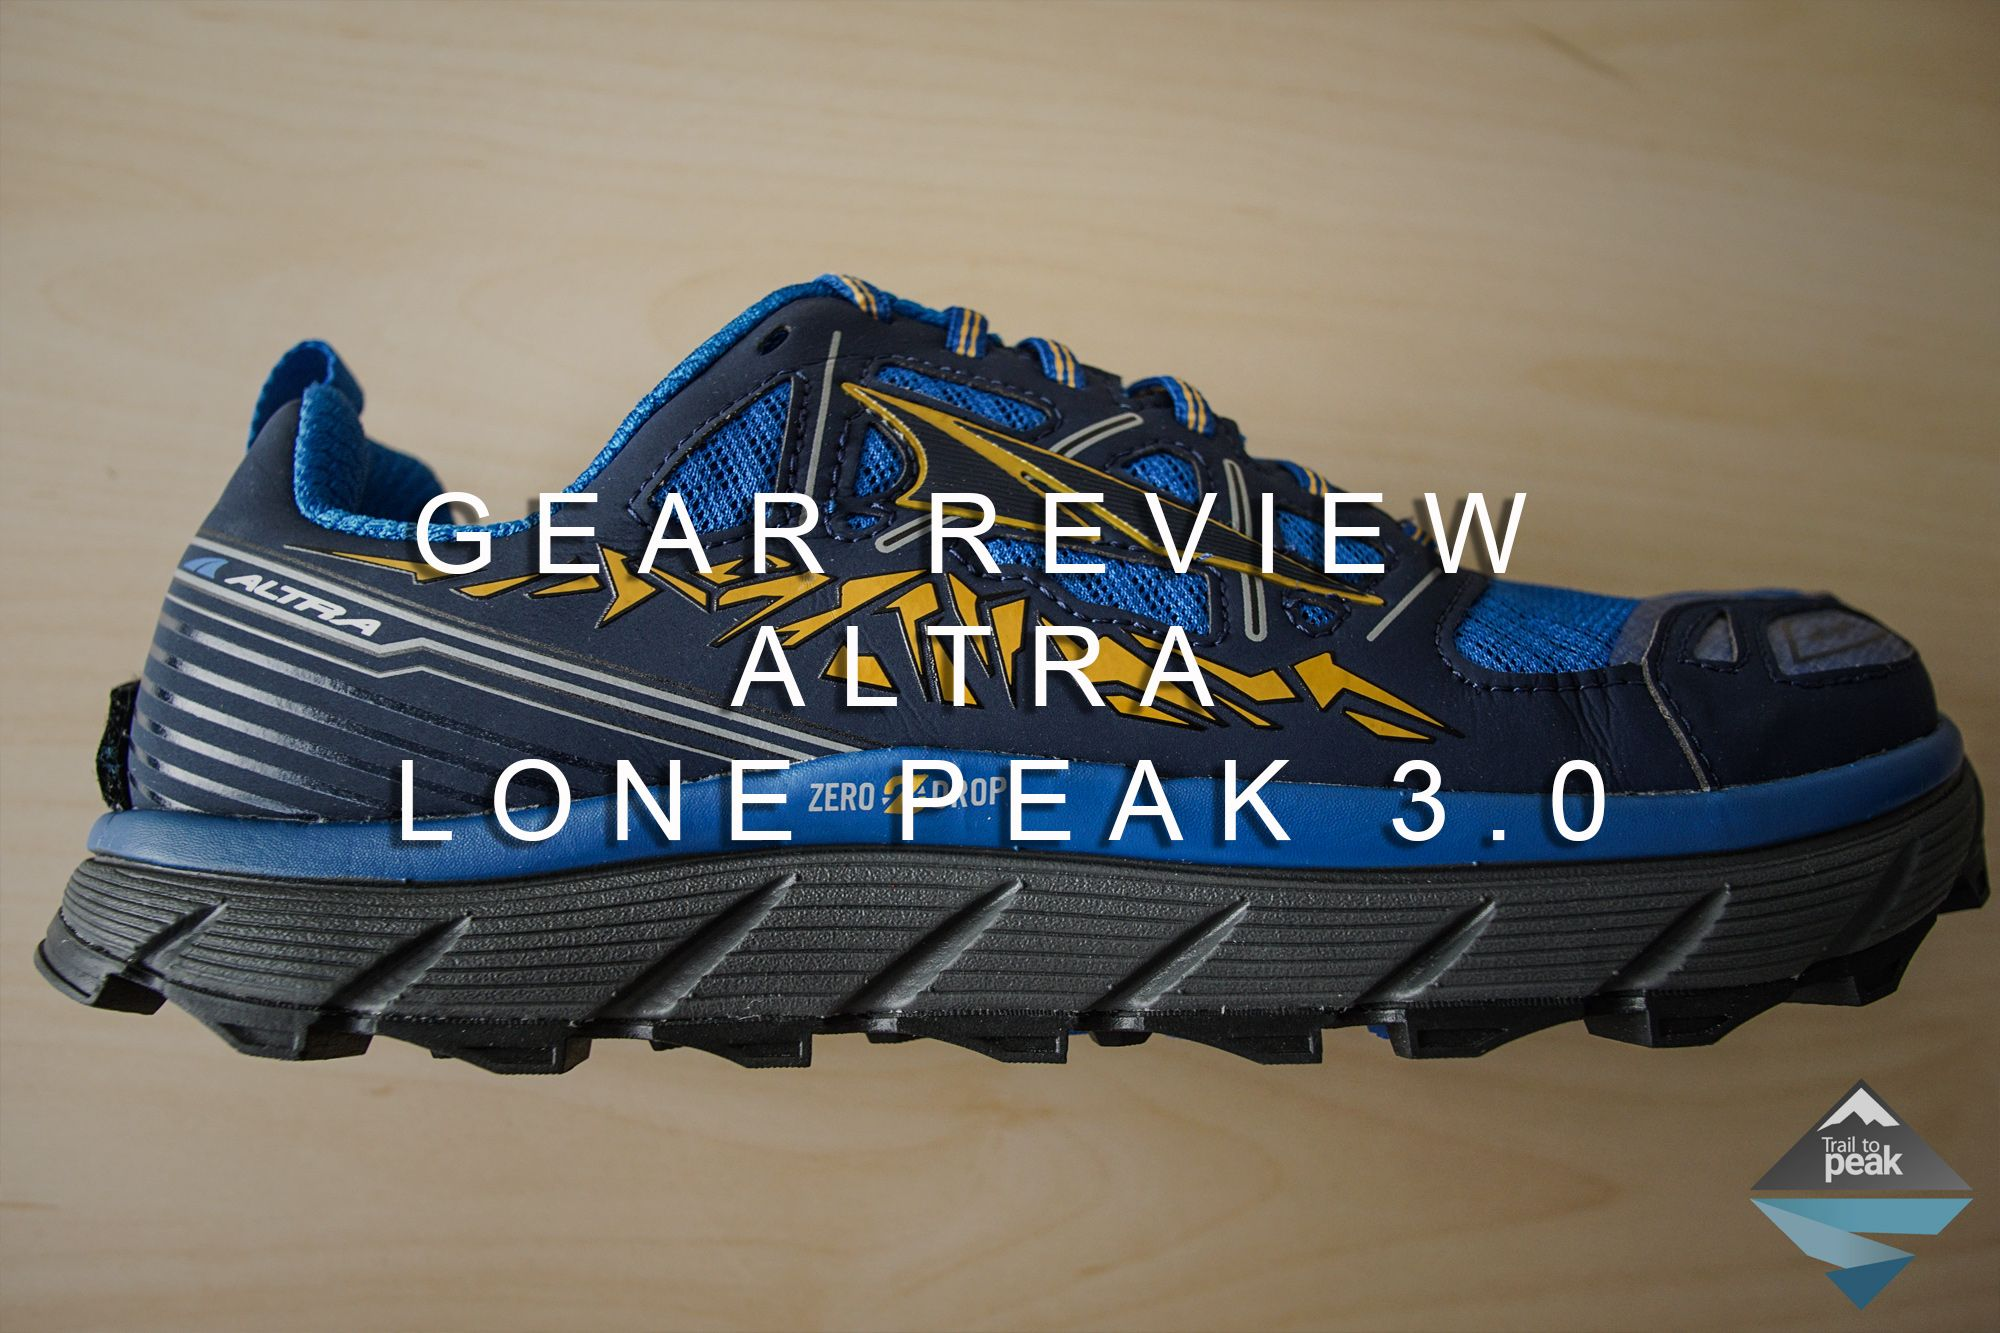 d3af4583521cc Altra Lone Peak 3.0 Gear Review Hiking Shoes